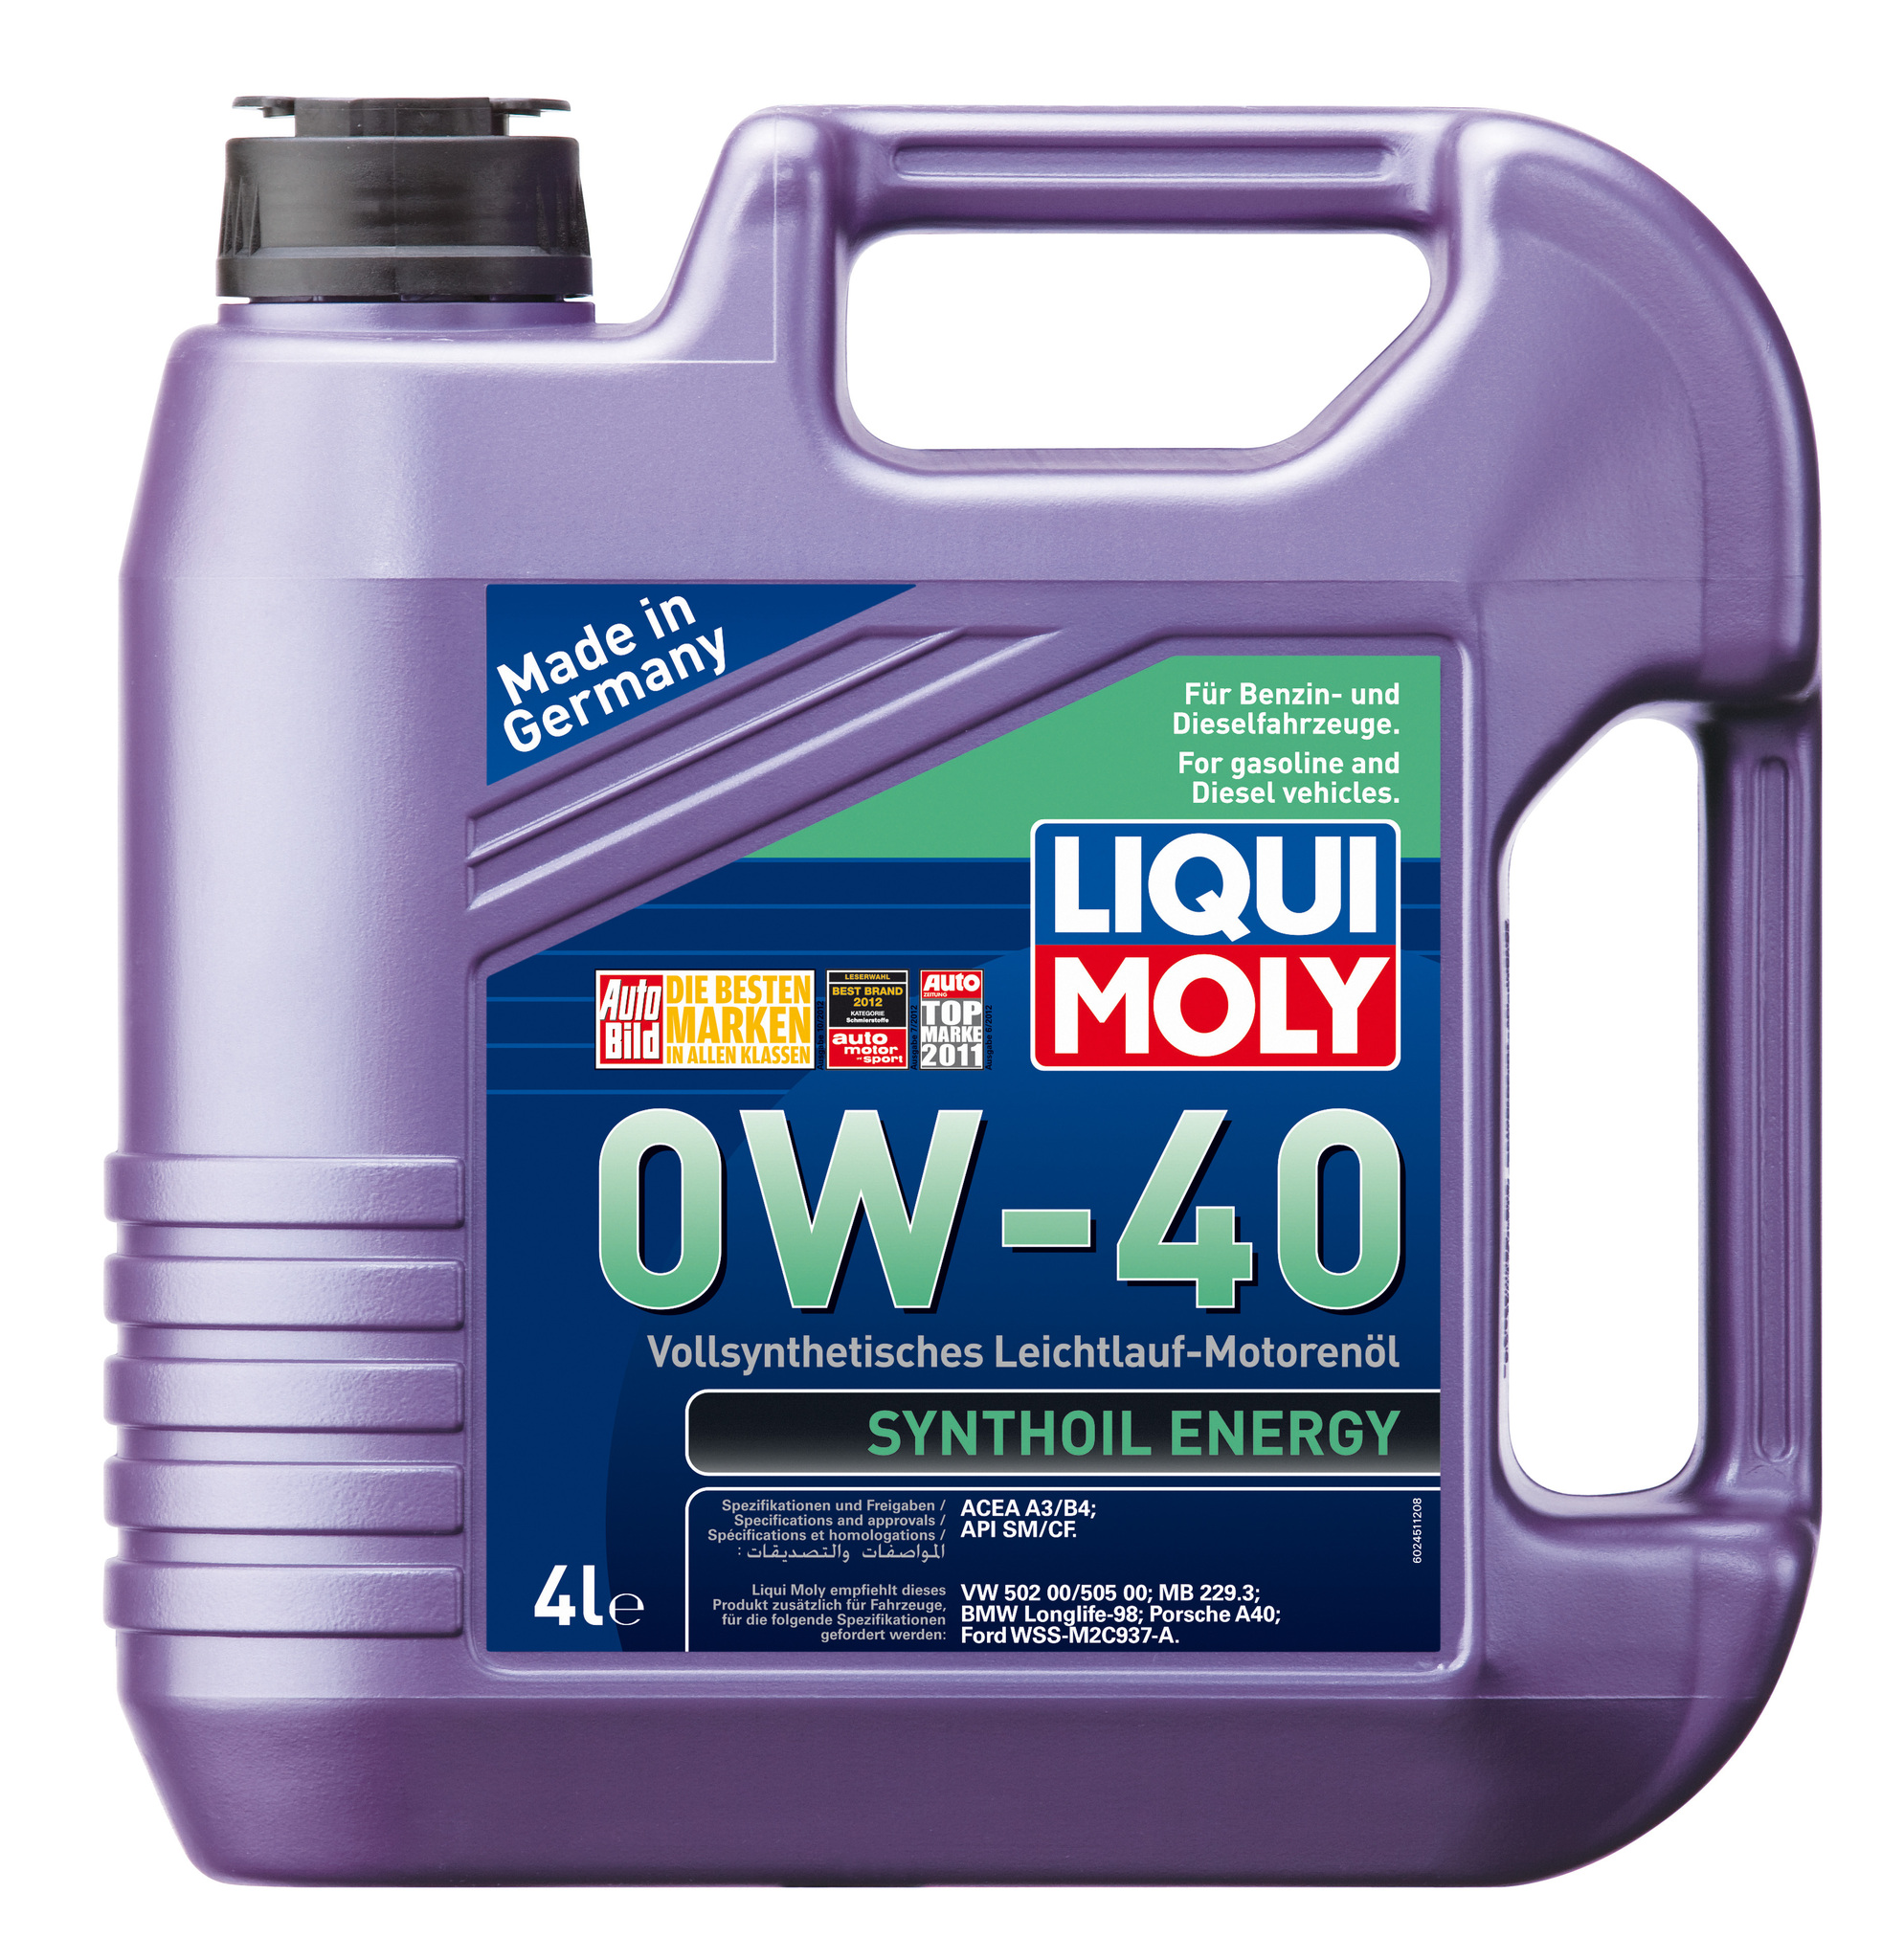 Synthoil Energy 0W-40